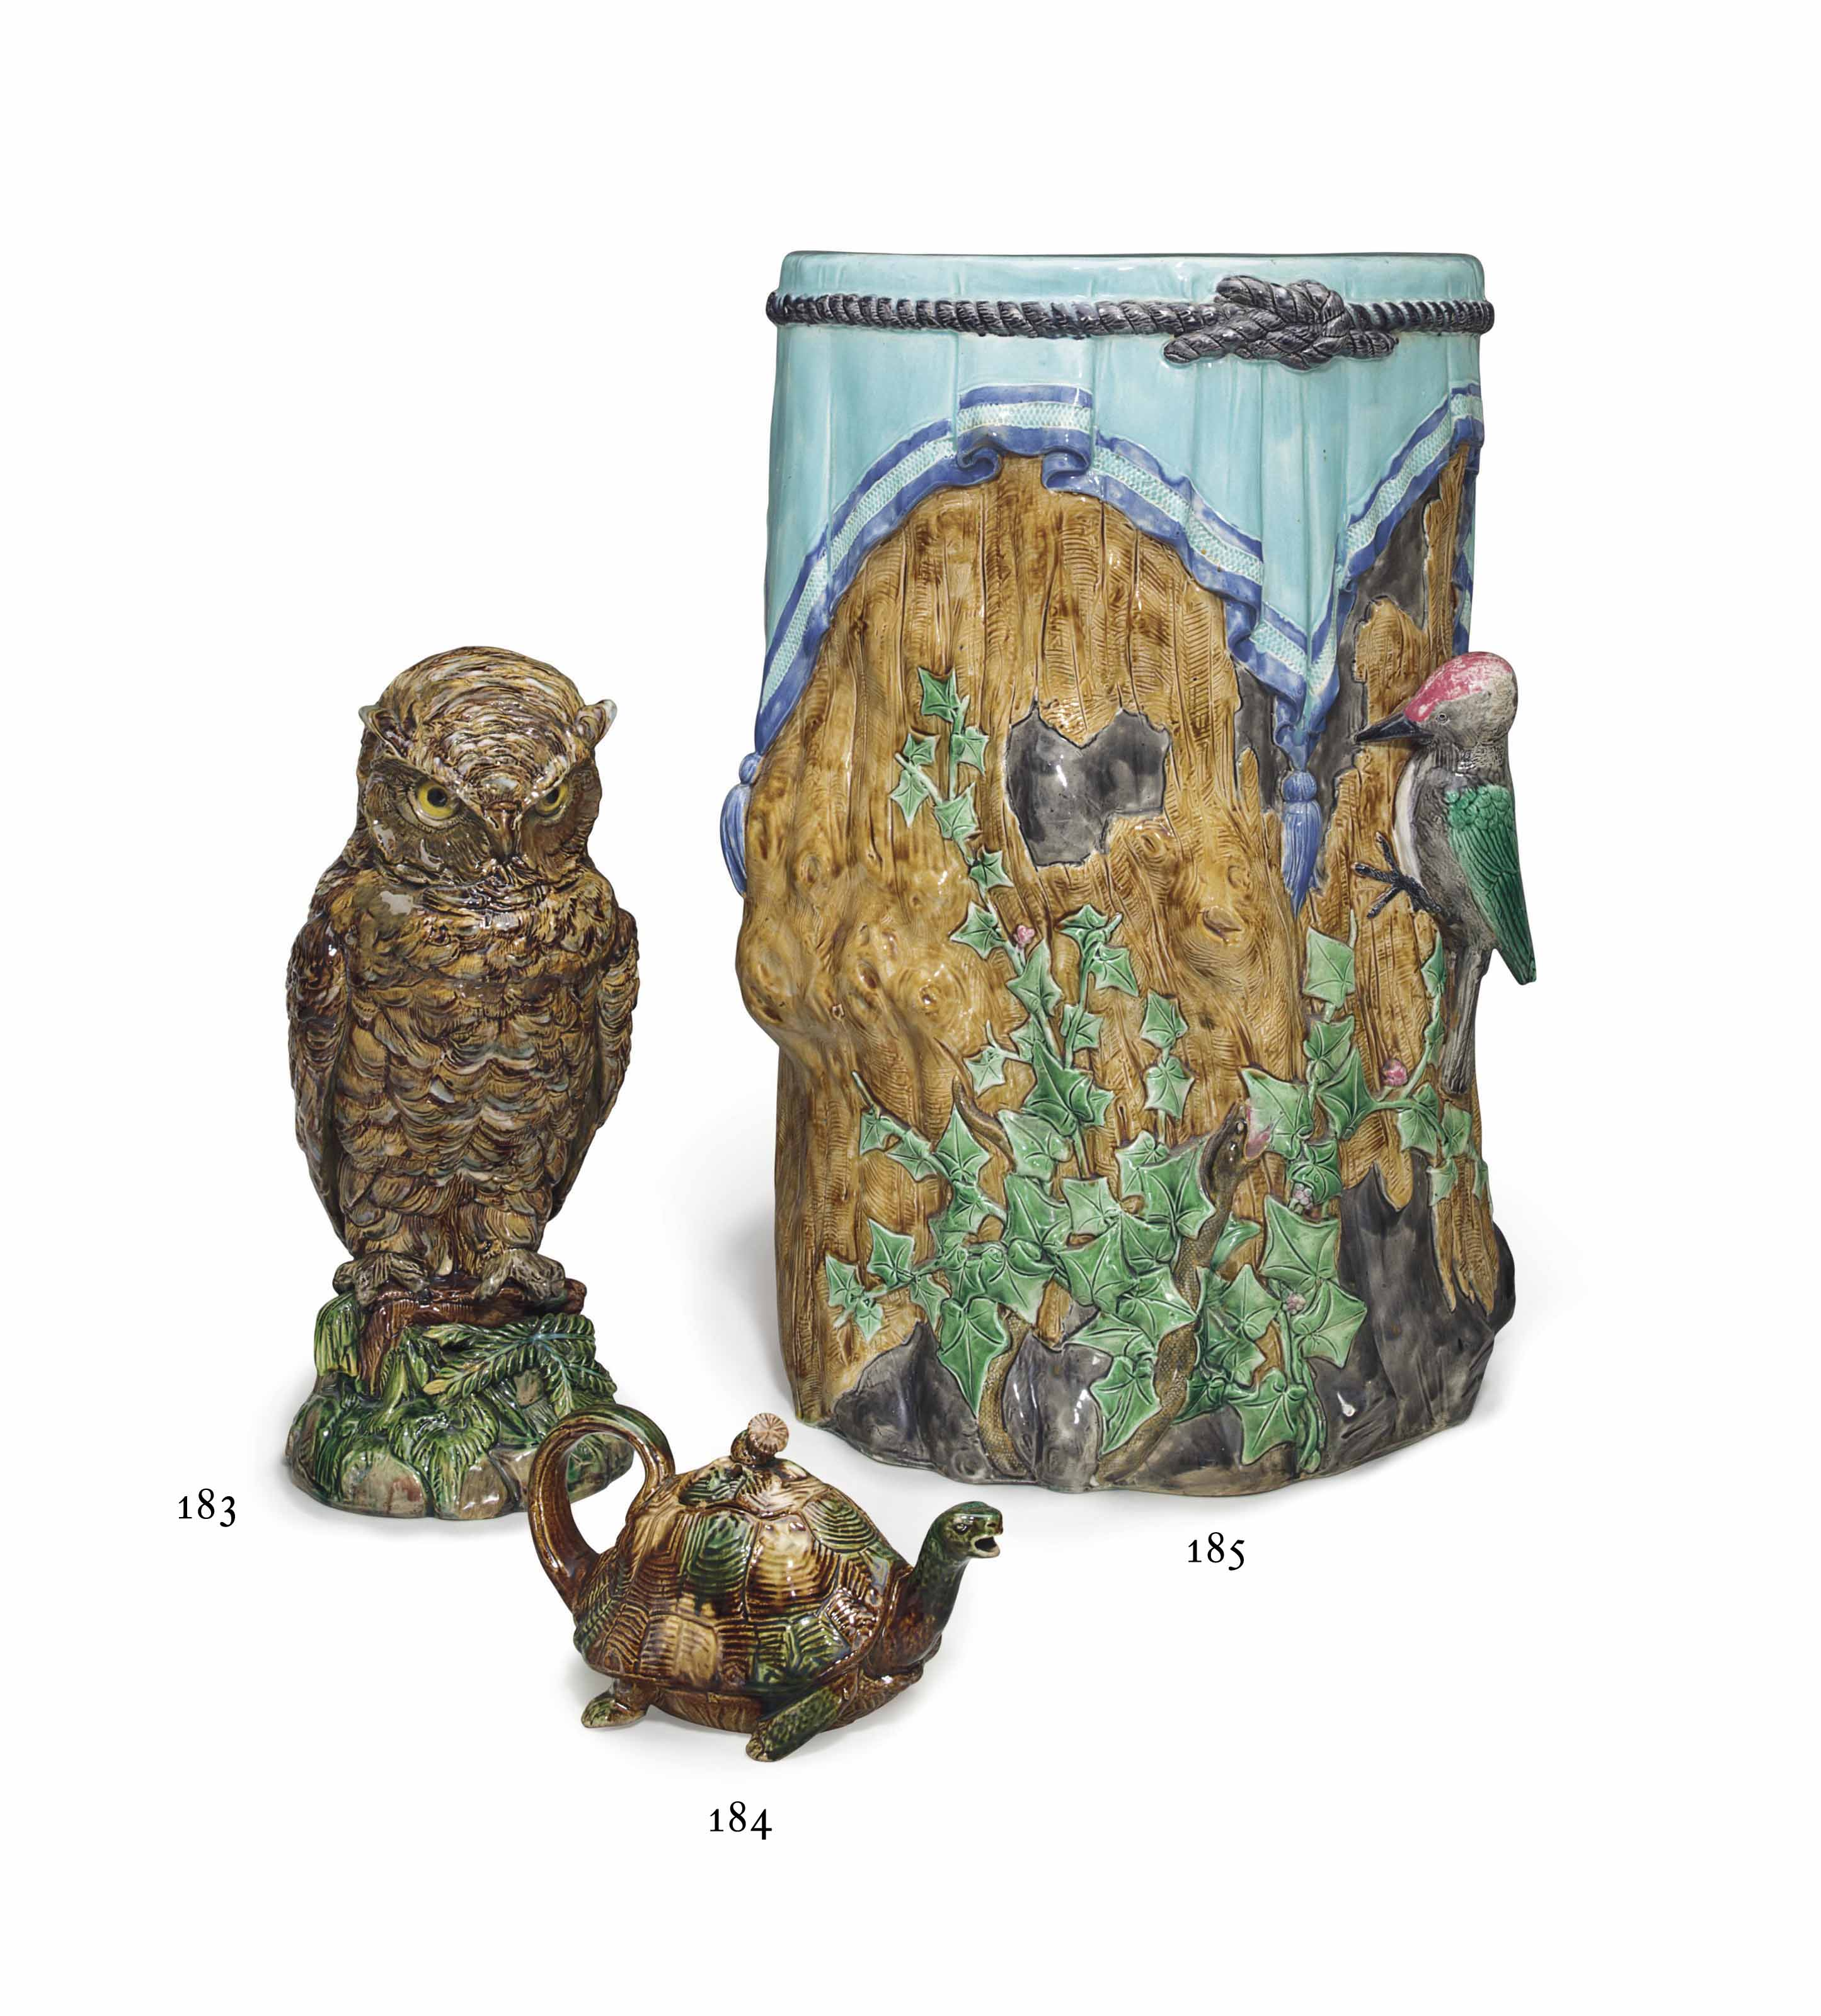 A WILLIAM SCHILLER & SON MAJOLICA MODEL OF AN OWL